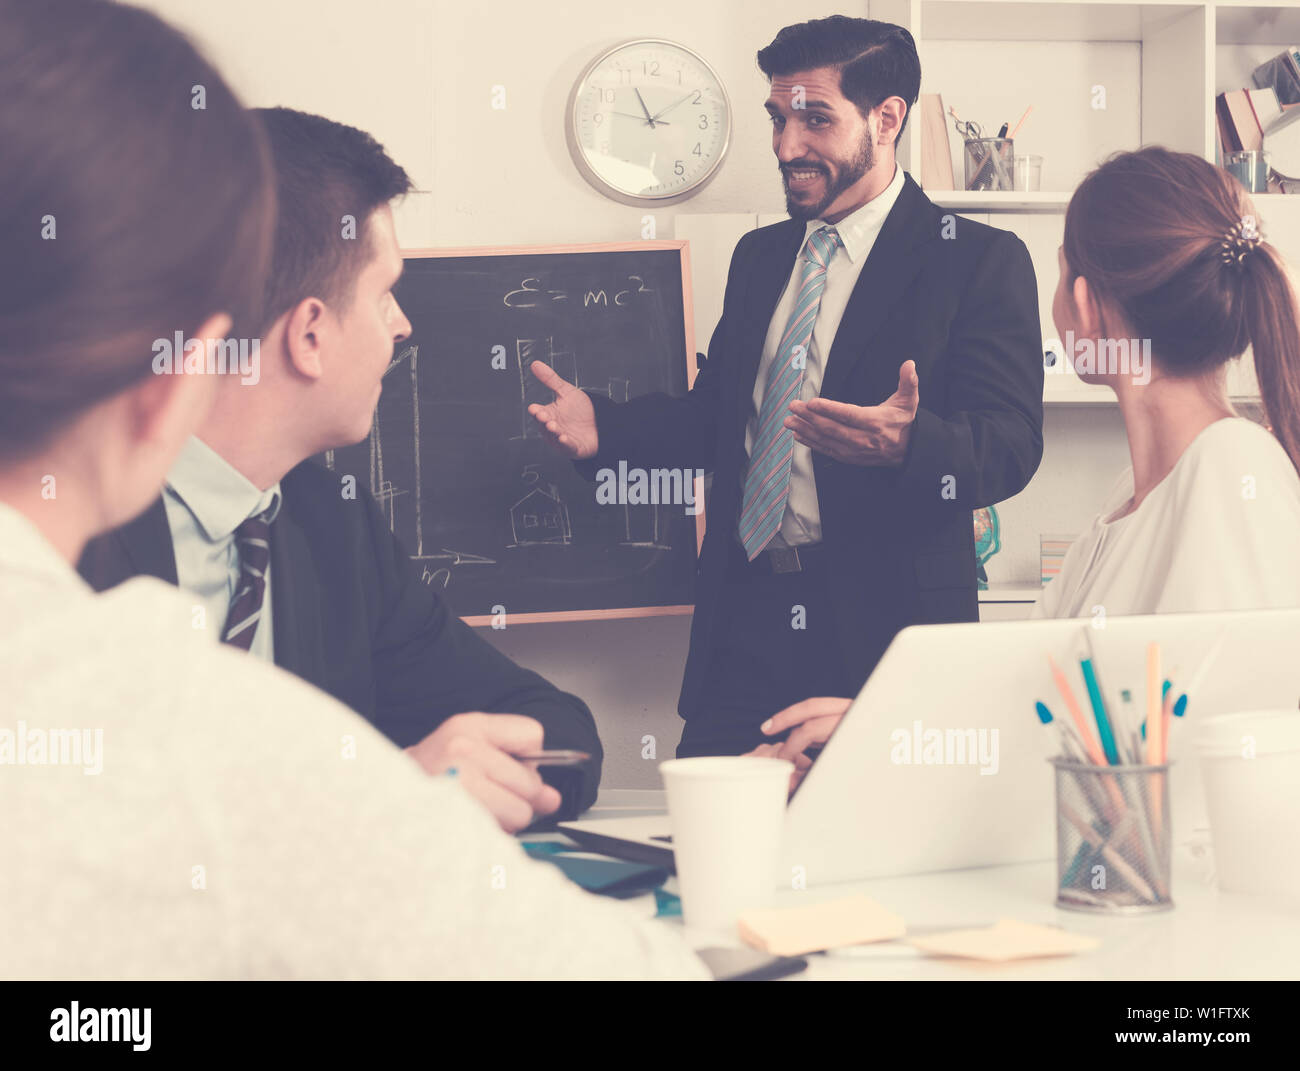 Confident businessman discussing new business project with members of his team - Stock Image